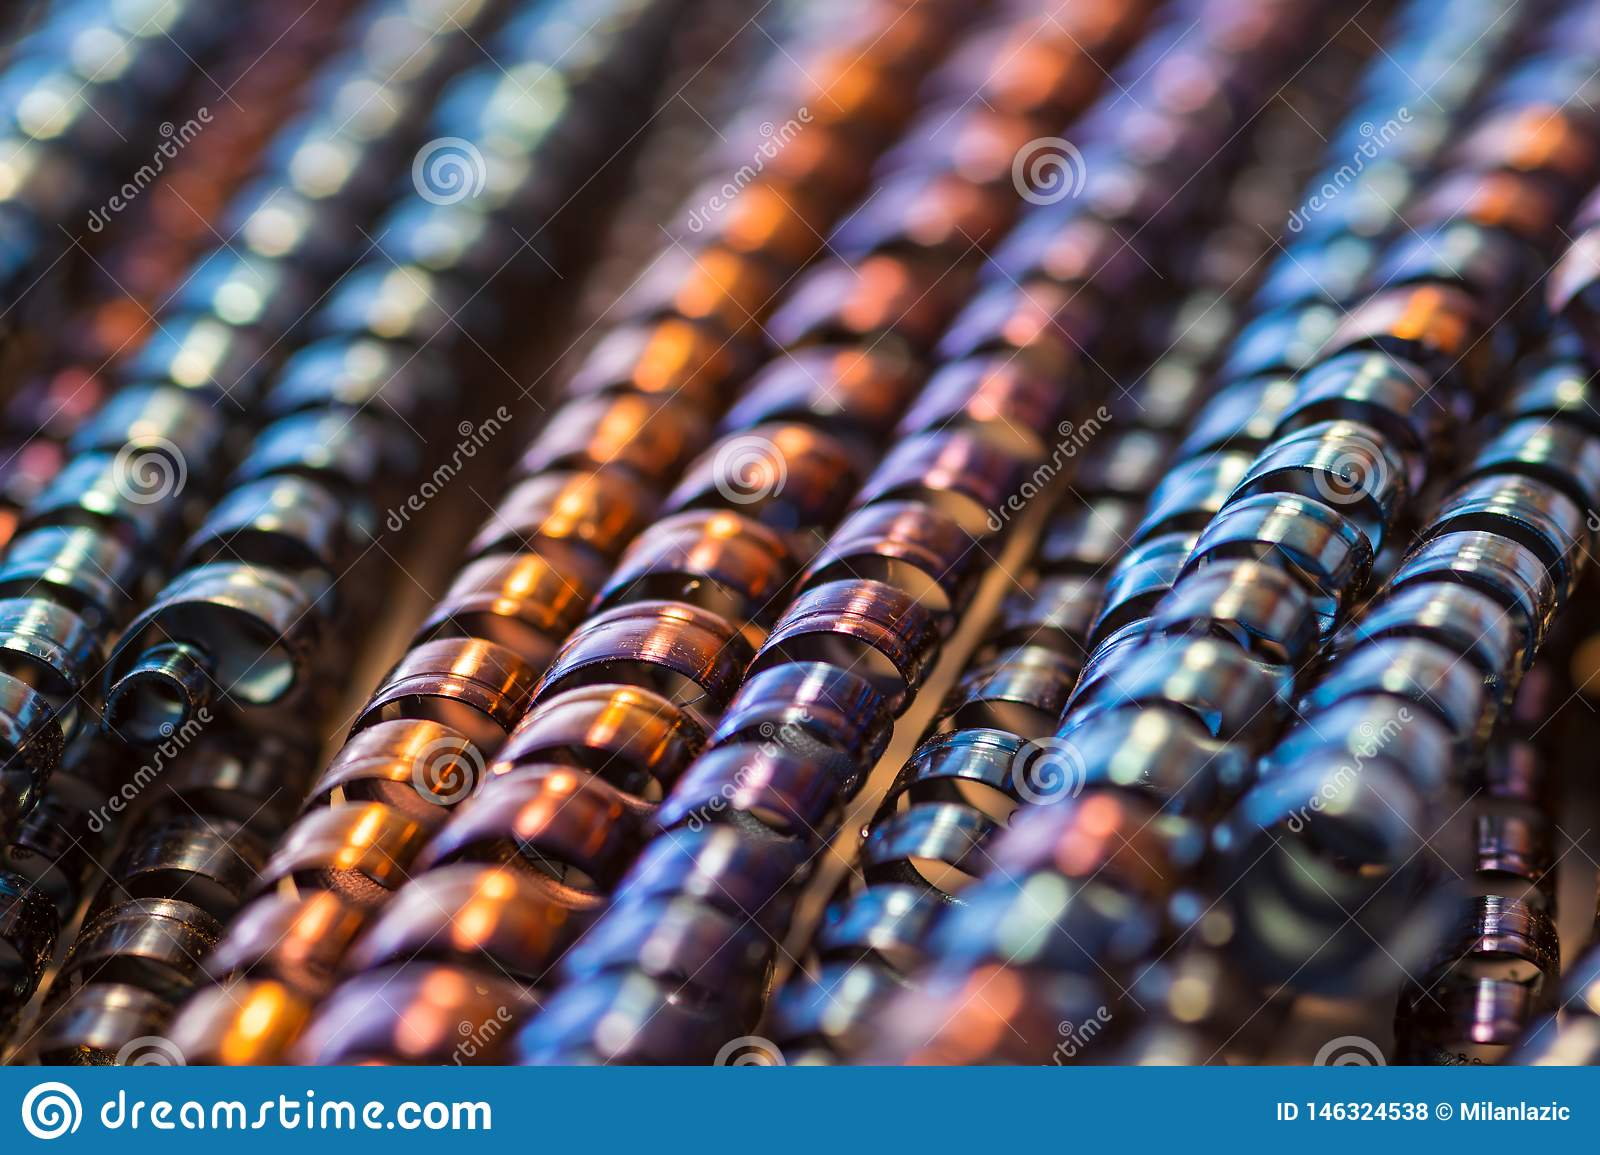 Many colorful metal spirals as a background